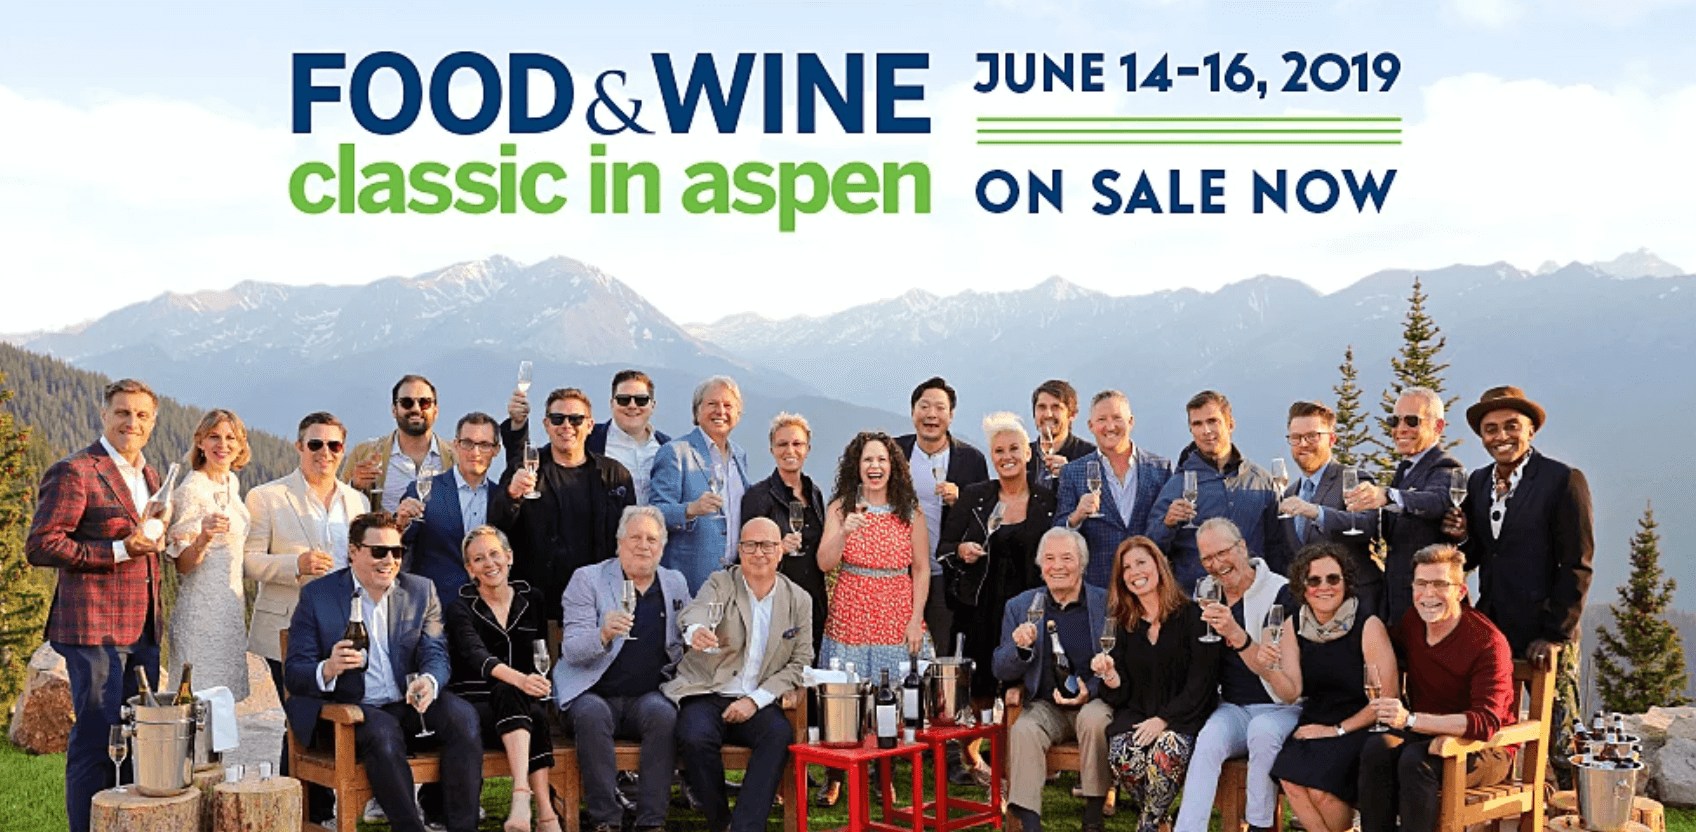 Artevino Llc Food Wine Classic In Aspen Rioja Trade Portal